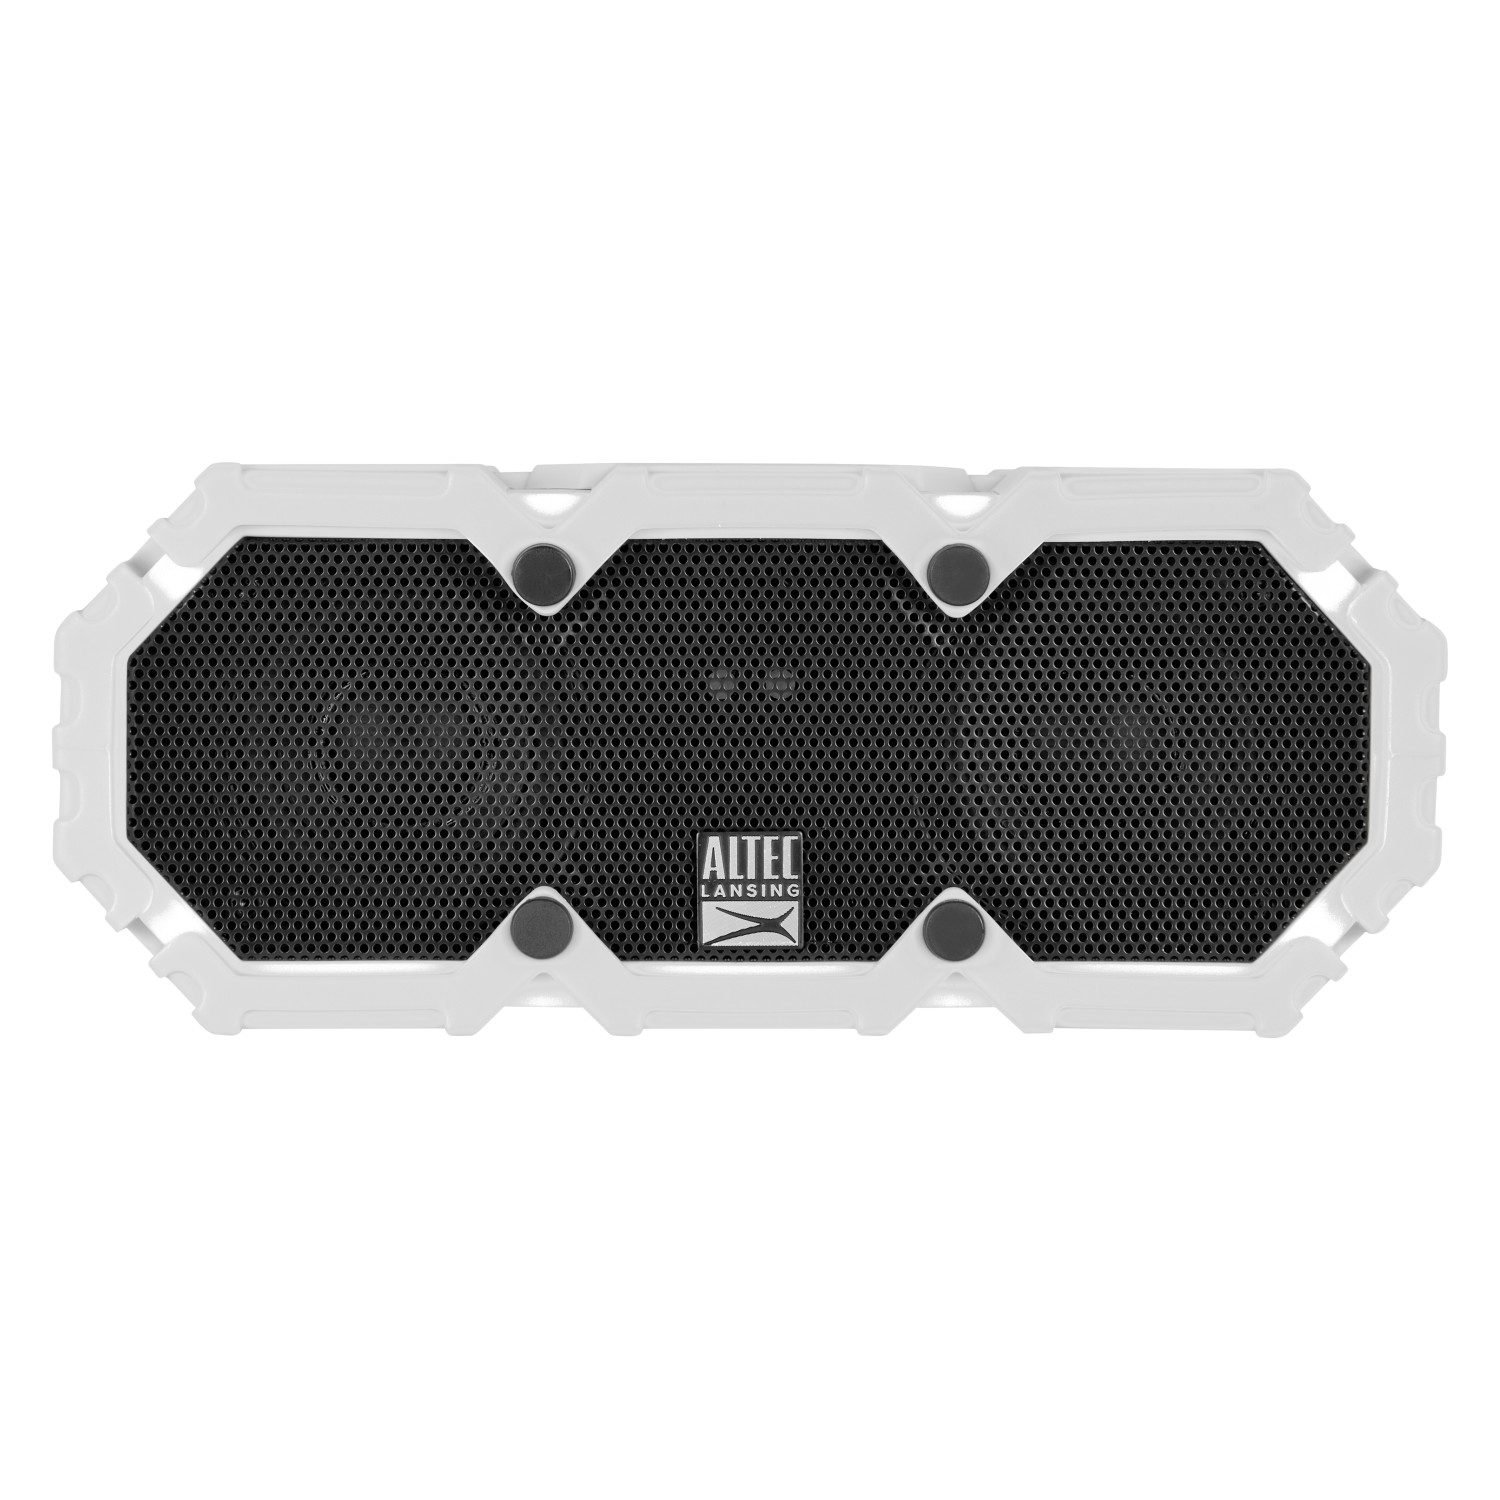 Altec Lansing IMW578s LifeJacket 3s Bluetooth Speaker by Altec Lancing